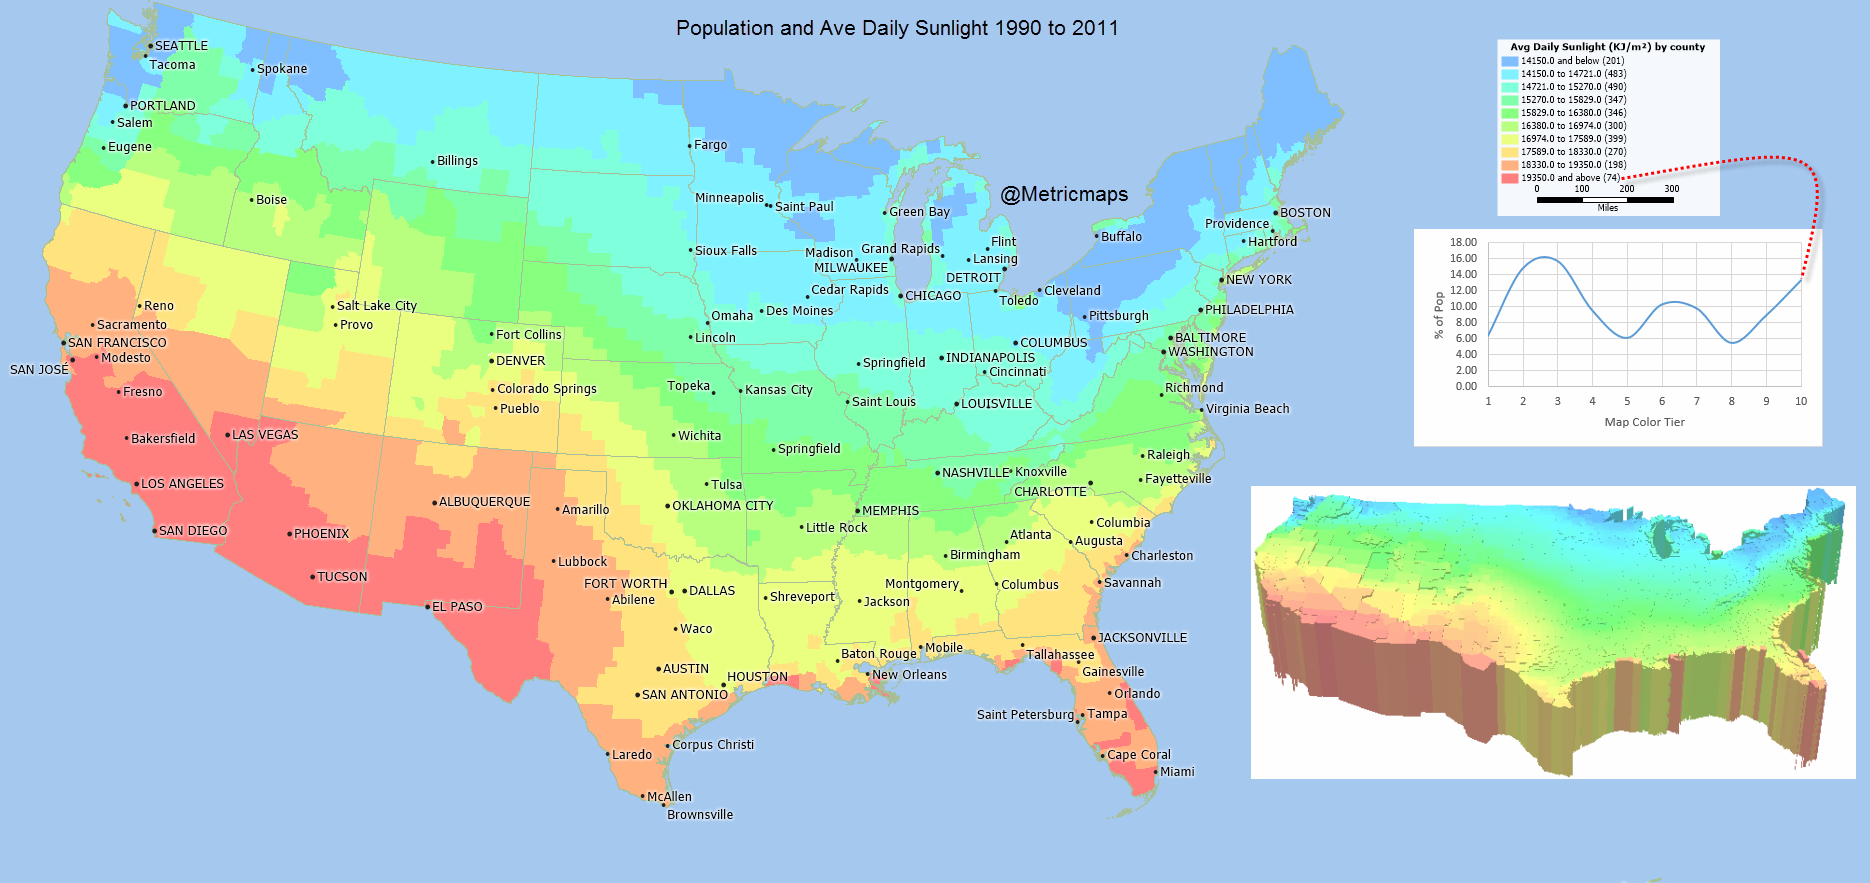 Darkest Places In The Us Map A Map Of Where In The U.S. You Get The Most Sunlight | Map